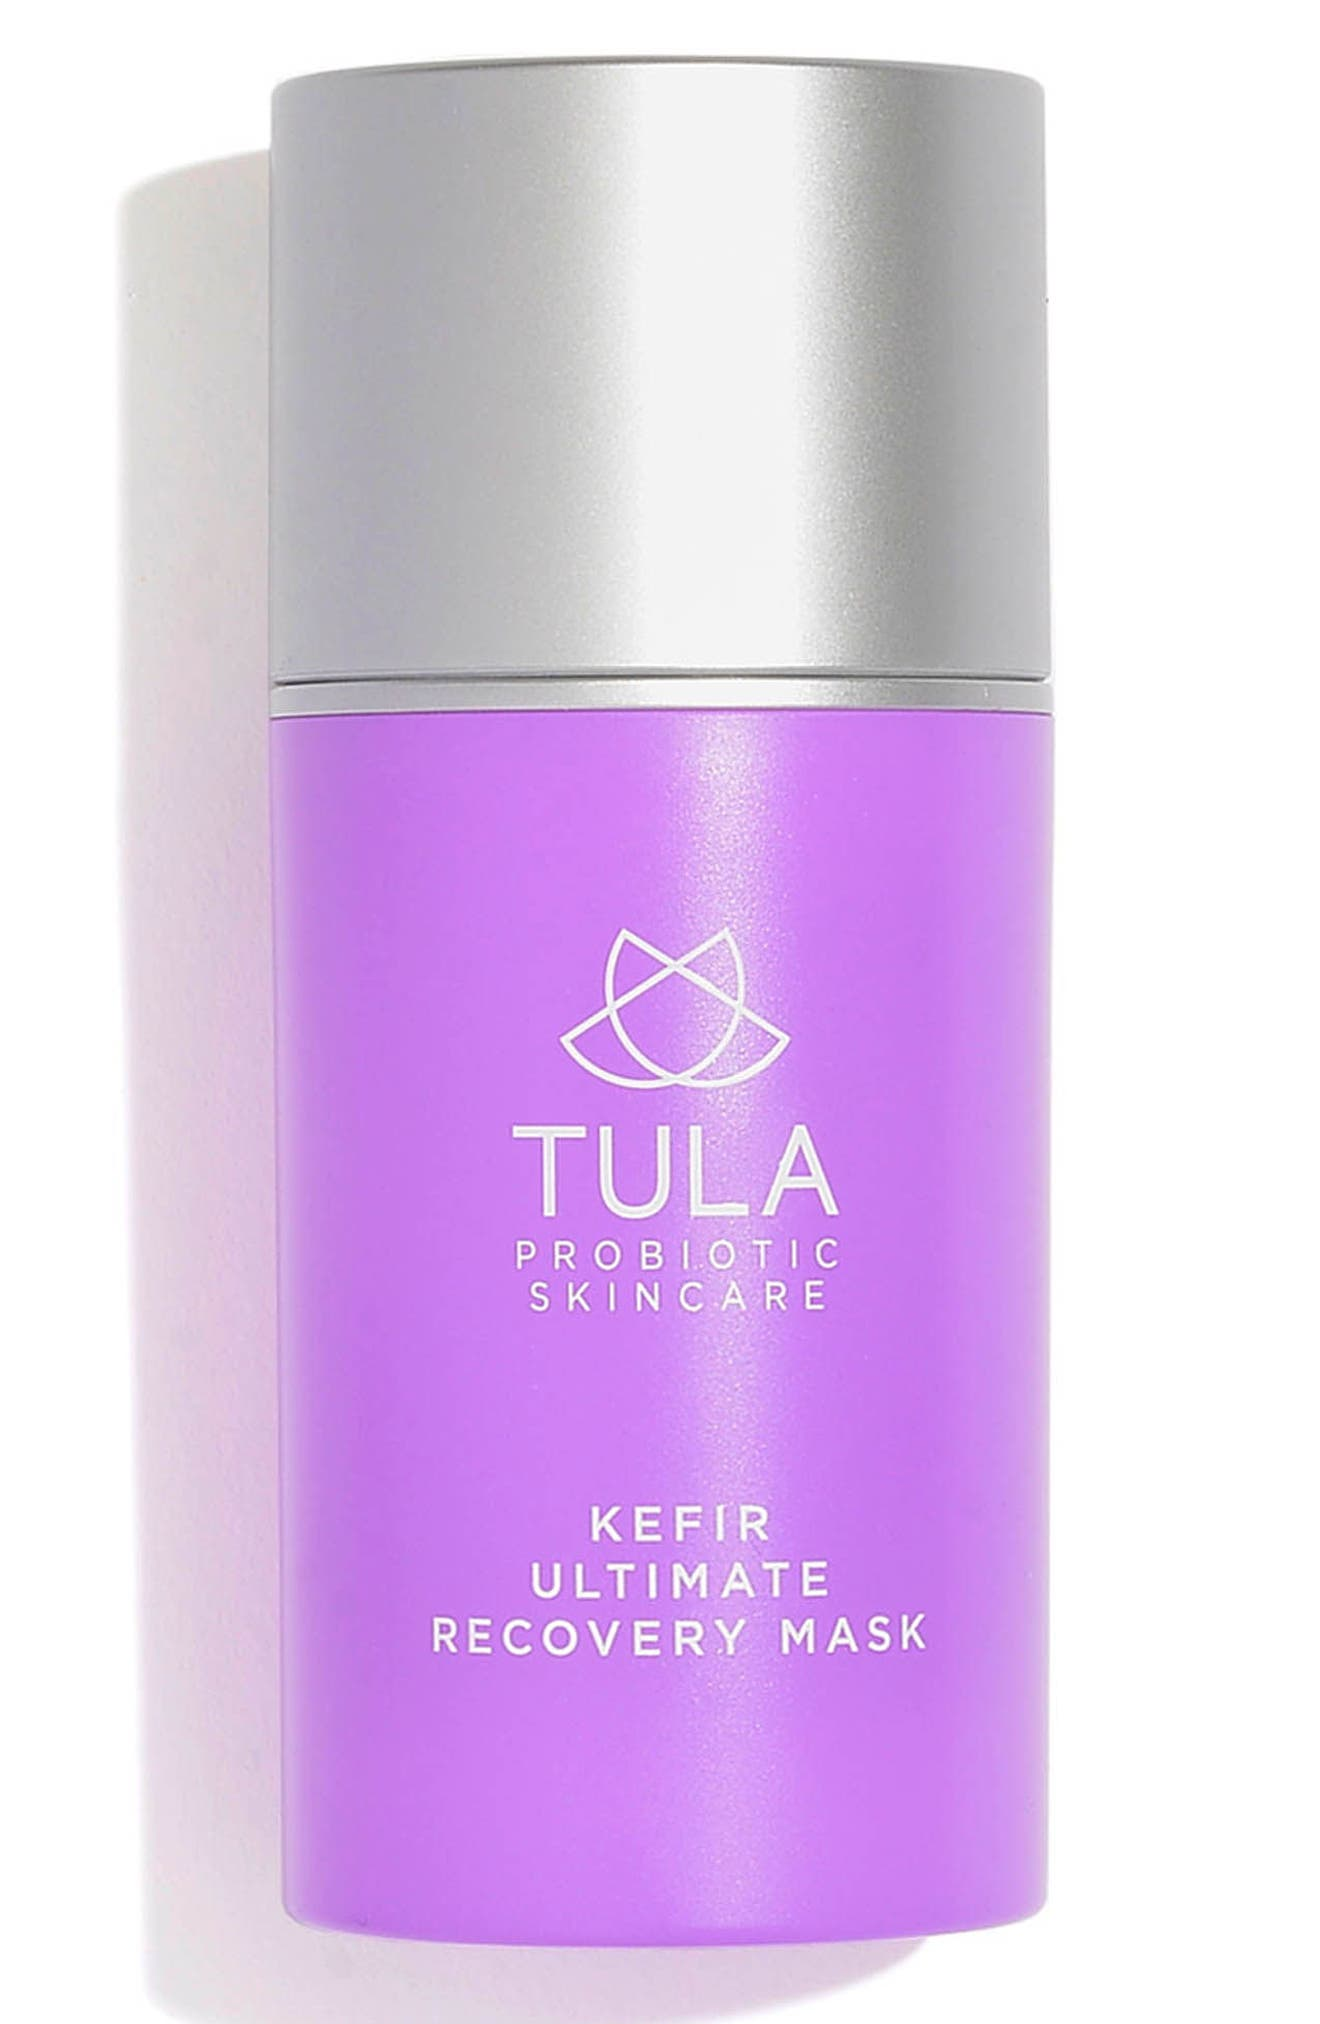 TULA PROBIOTIC SKINCARE Kefir Ultimate Recovery Mask, Main, color, NO COLOR